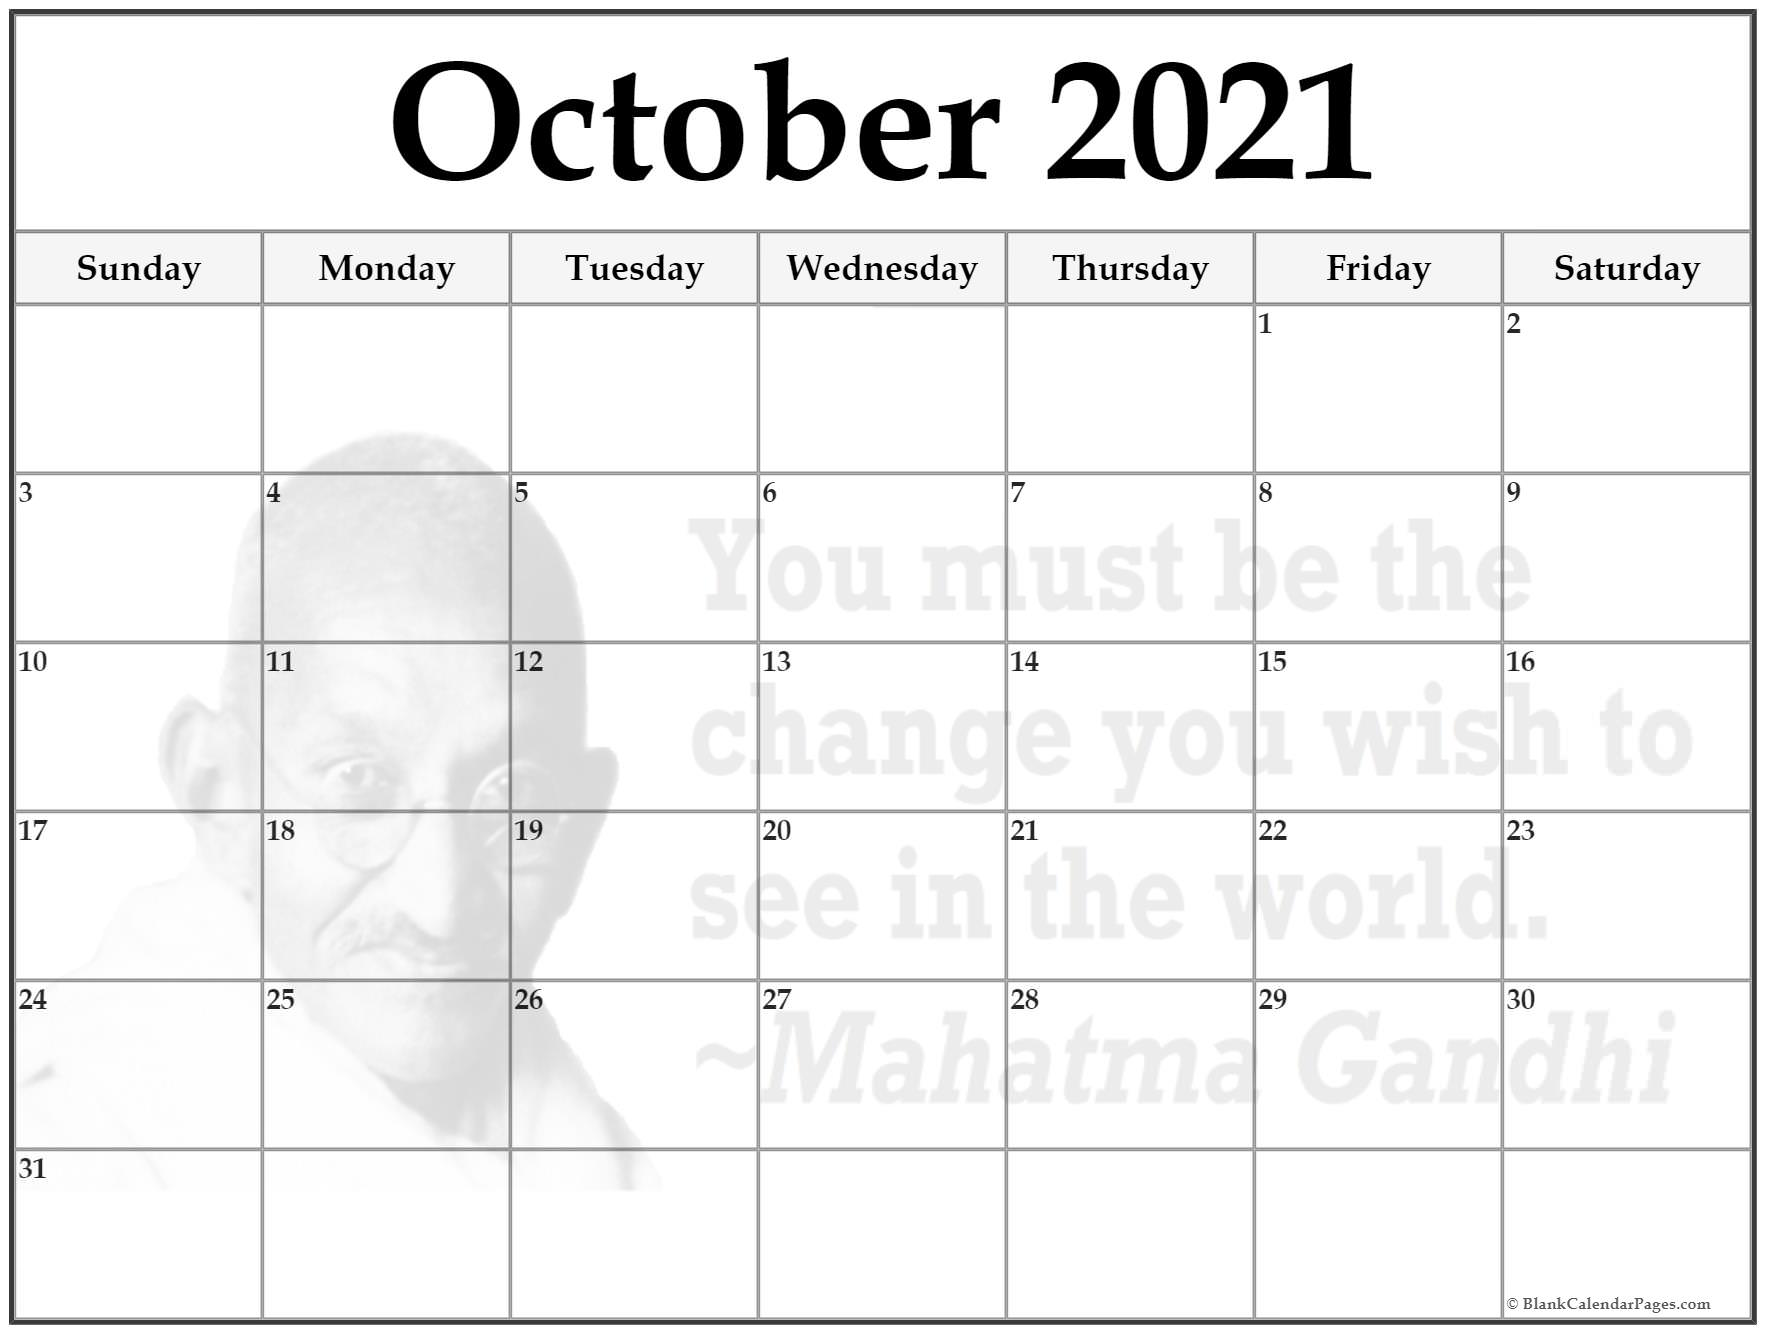 October 2019 monthly calendar template. You must be the change you wish to see in the world. ~Mahatma Gandhi